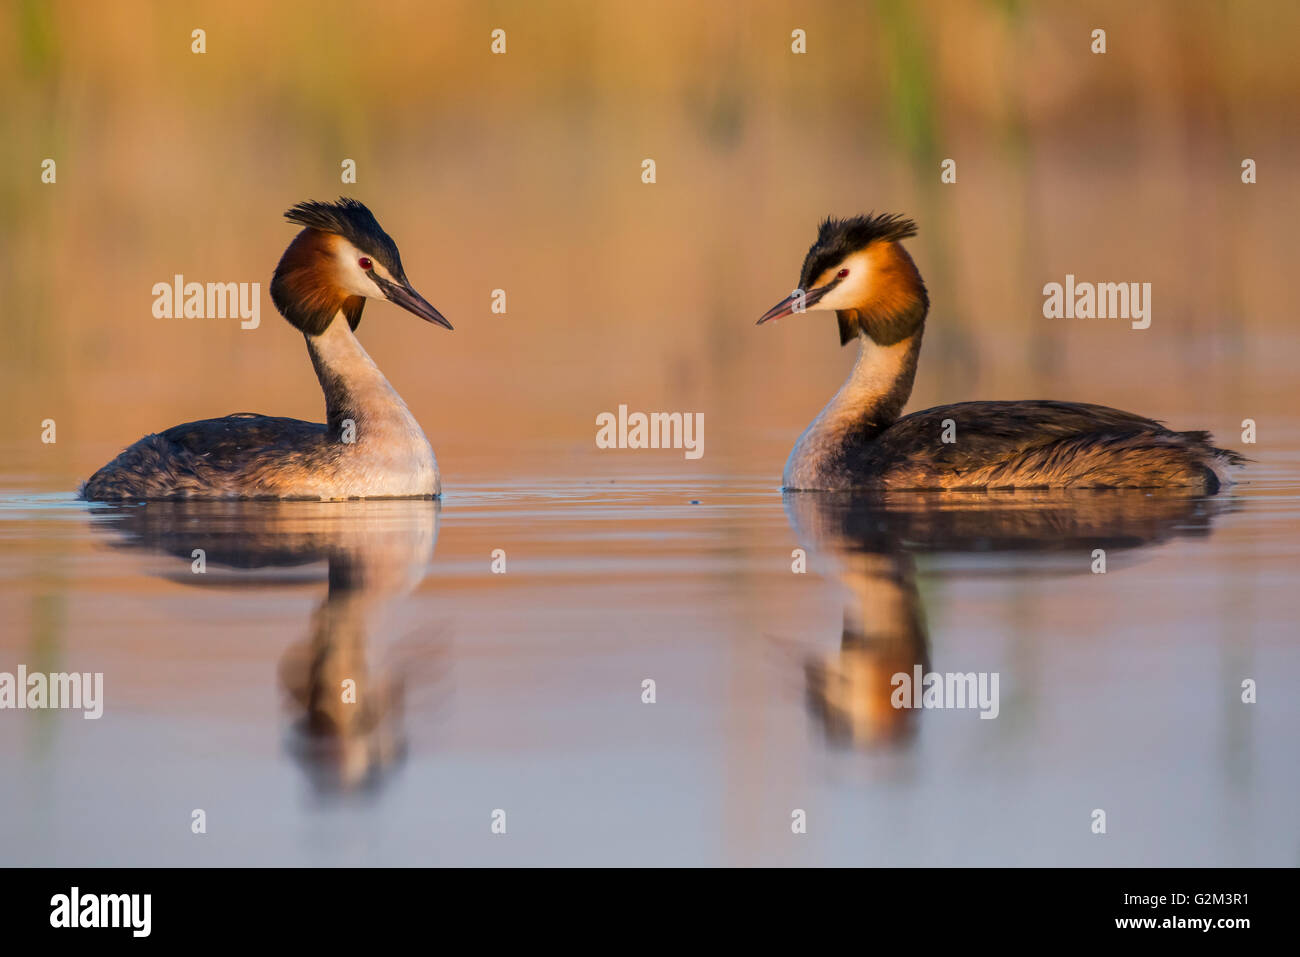 Great Crested Grebes on the lake - Stock Image